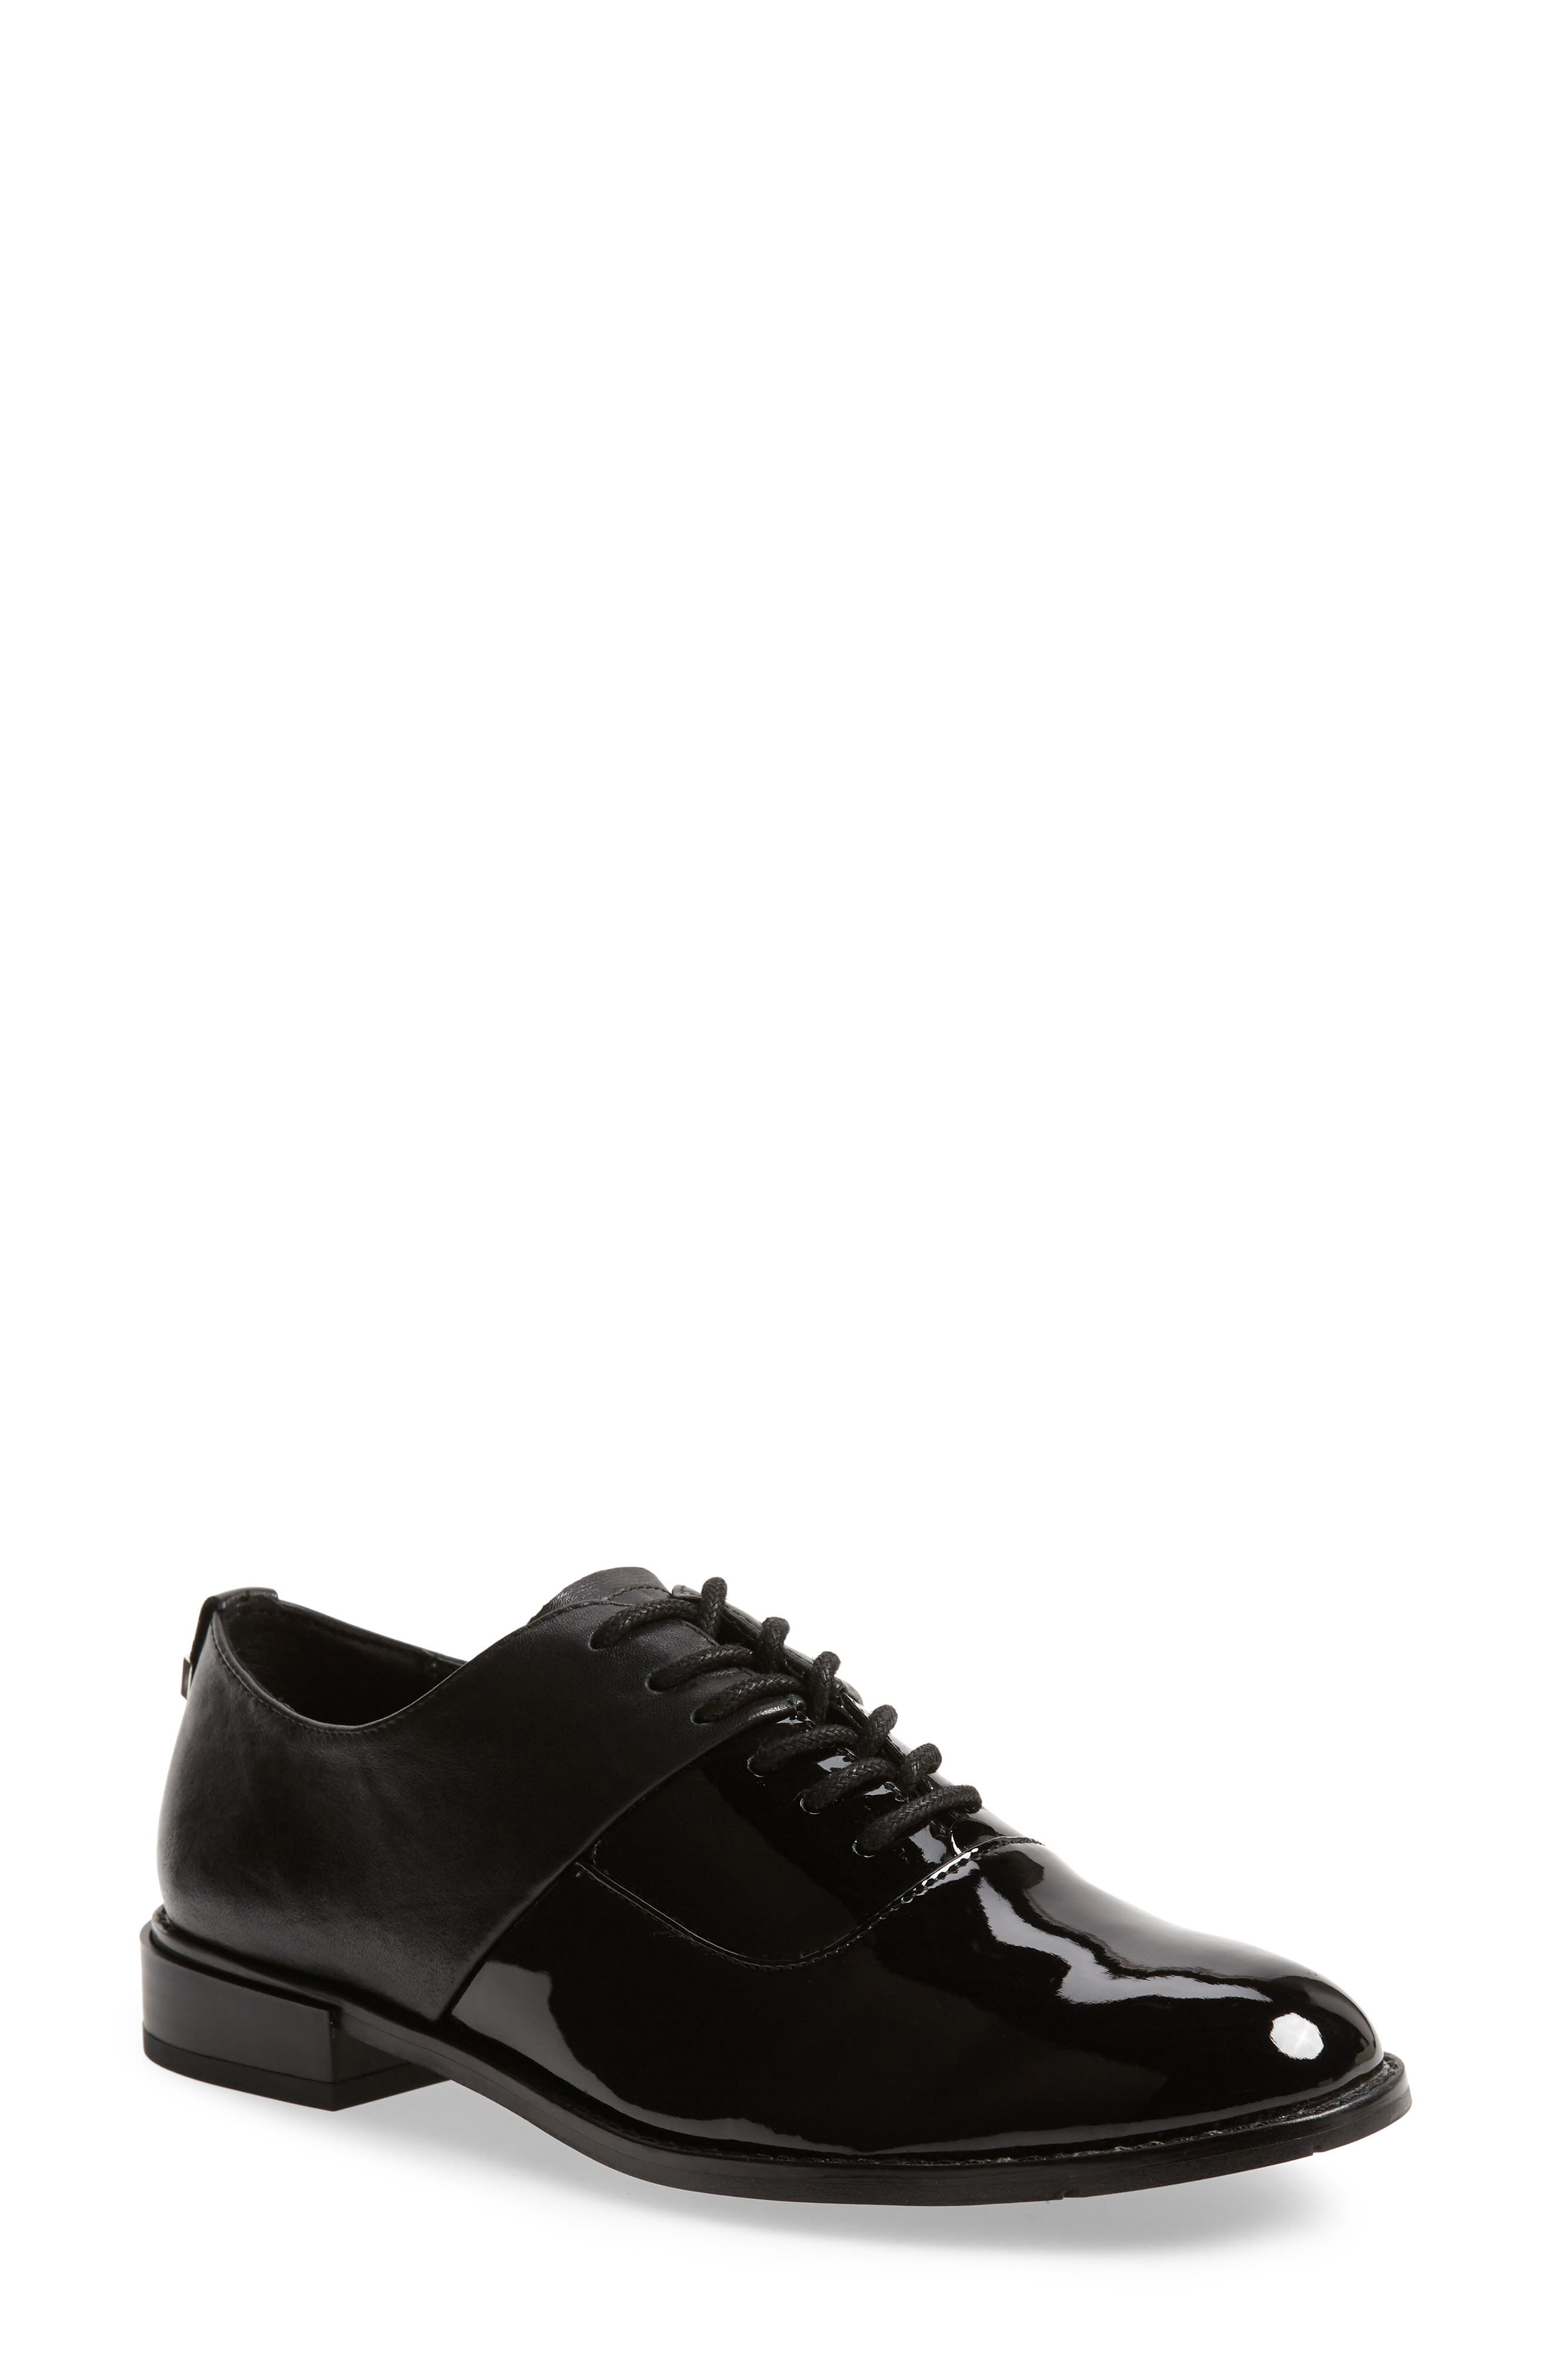 Calvin Klein Aracely Oxford- Black